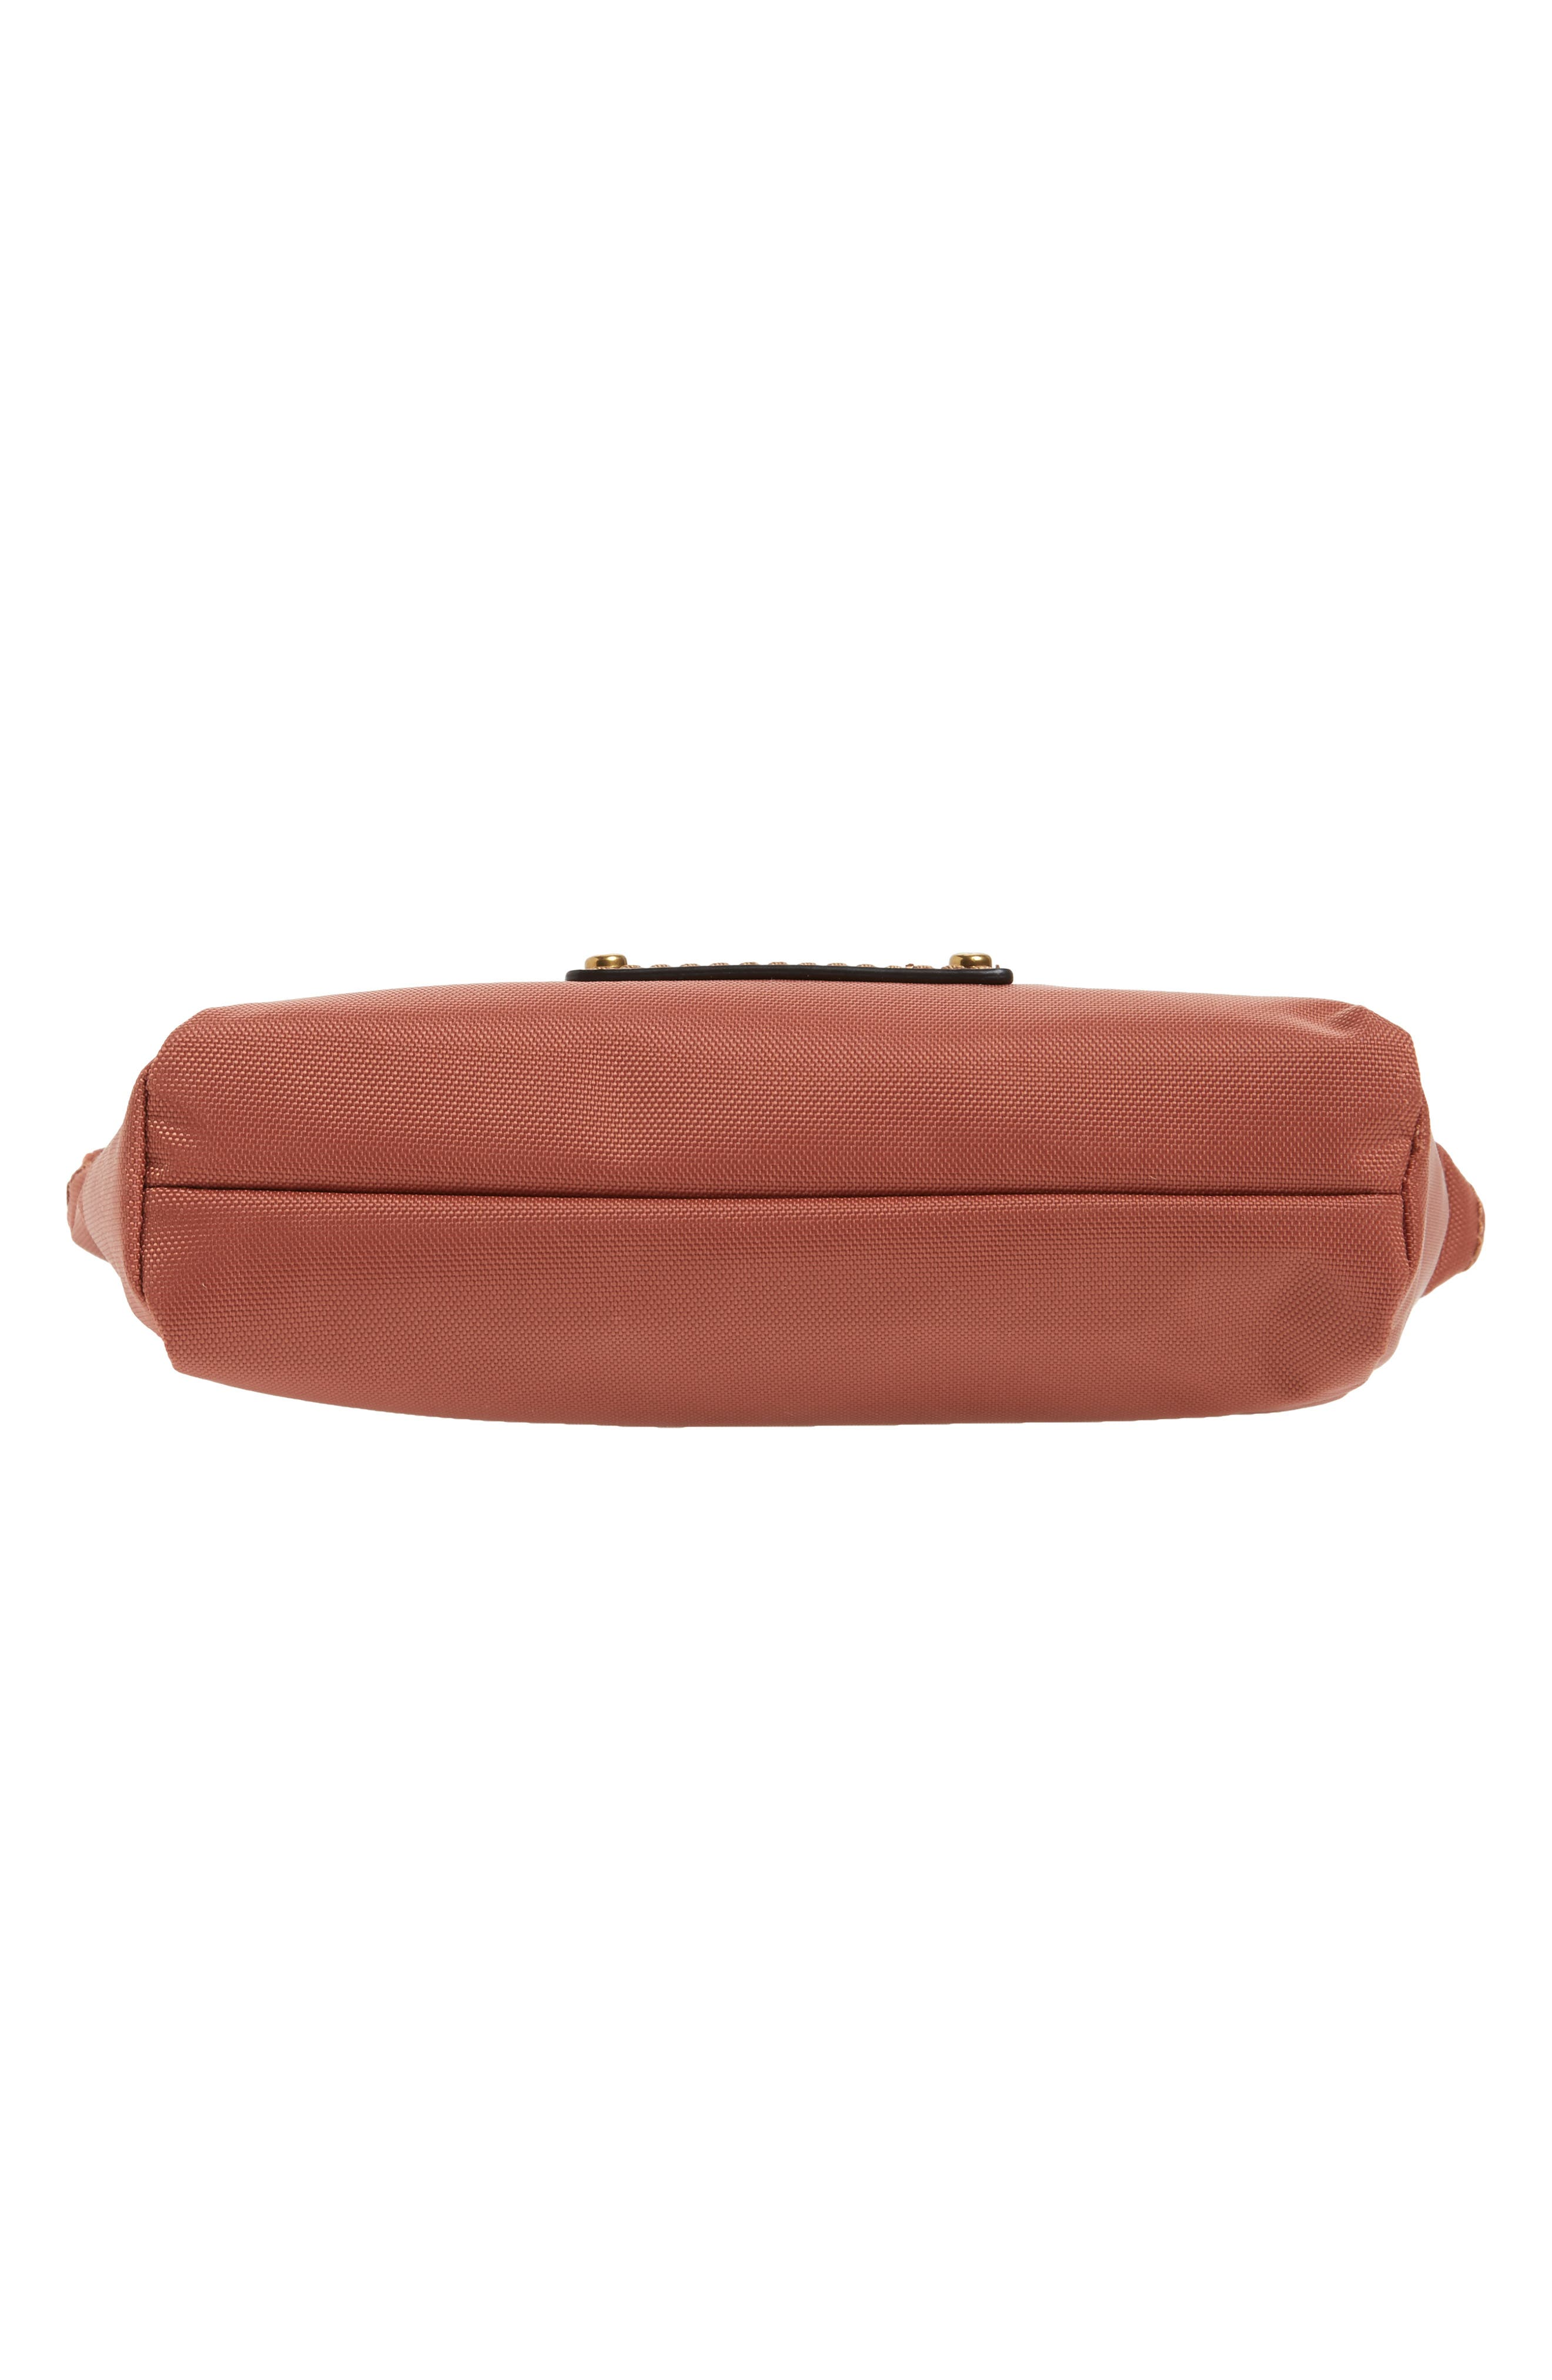 Ivy Nylon Cosmetics Bag,                             Alternate thumbnail 5, color,                             Dusty Rose